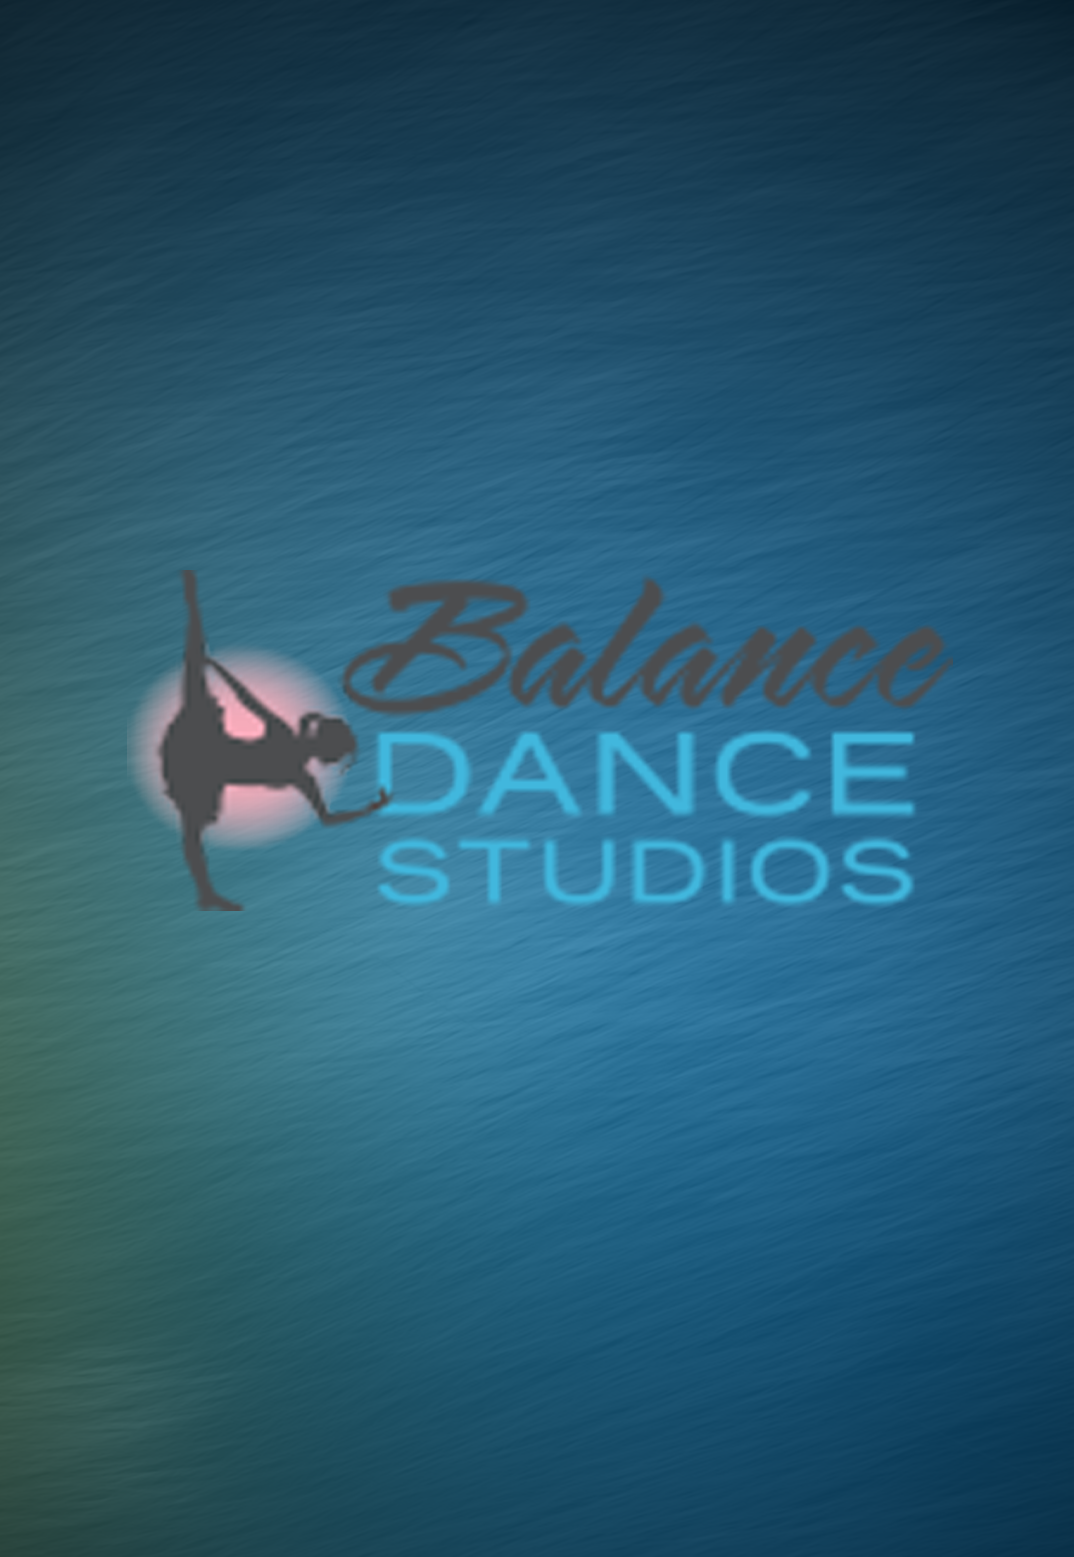 BALANCE DANCE STUDIO MAY 14, 2016 ANIMAL KINGDOM RECITAL AND ALL RECITAL COMBINED